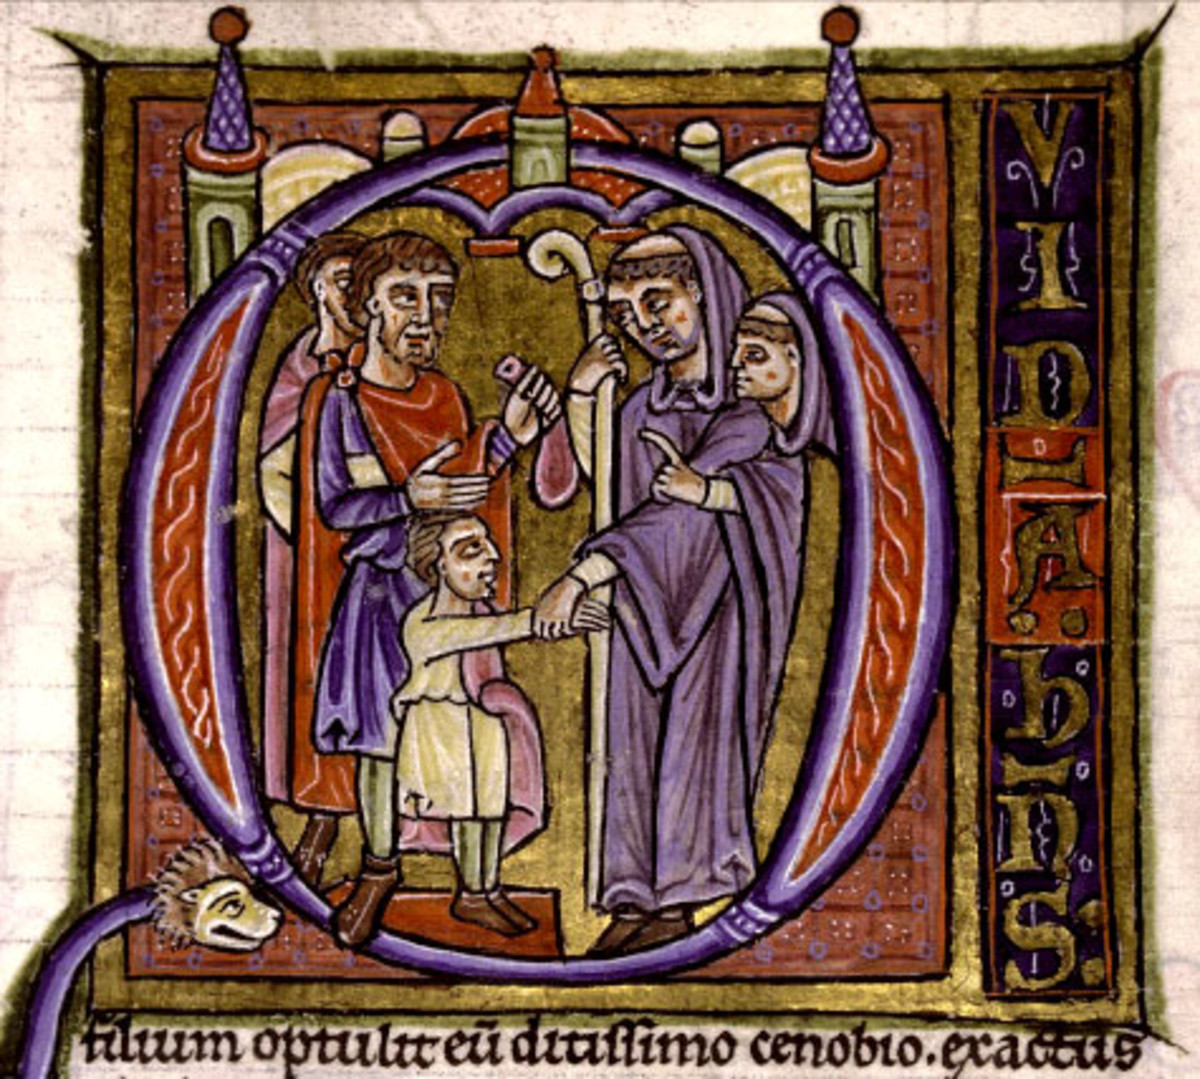 A 12th century illustration of an abbot practicing simony, a common practice in the Middle Ages.